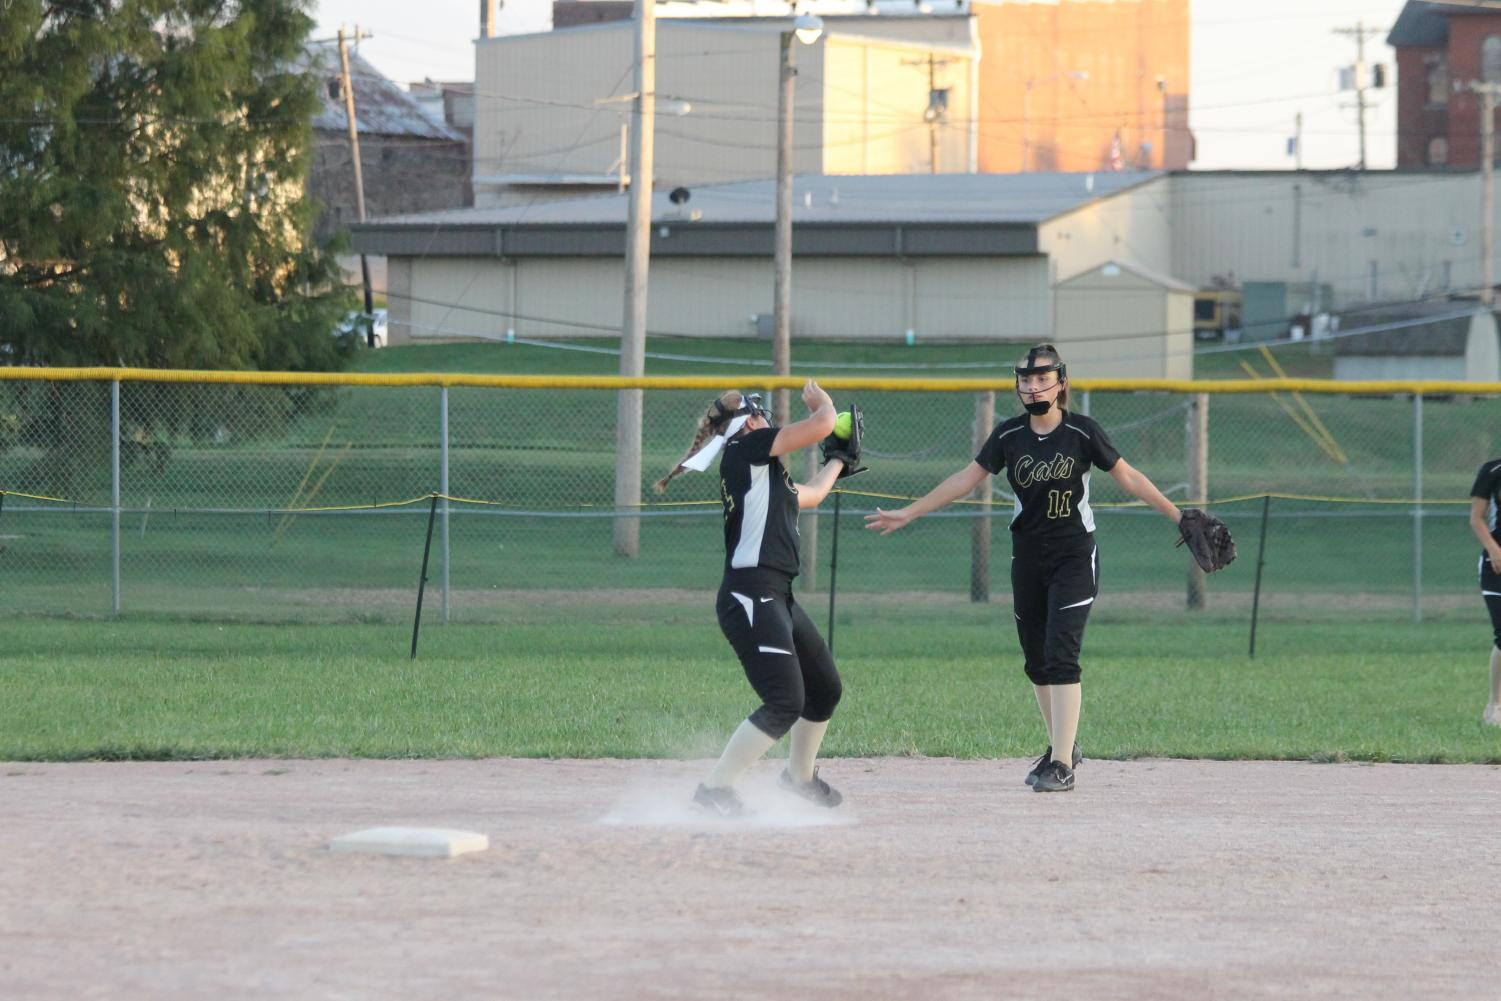 Kylee Bastie catching the ball with the help of Mackenzie Phillips.